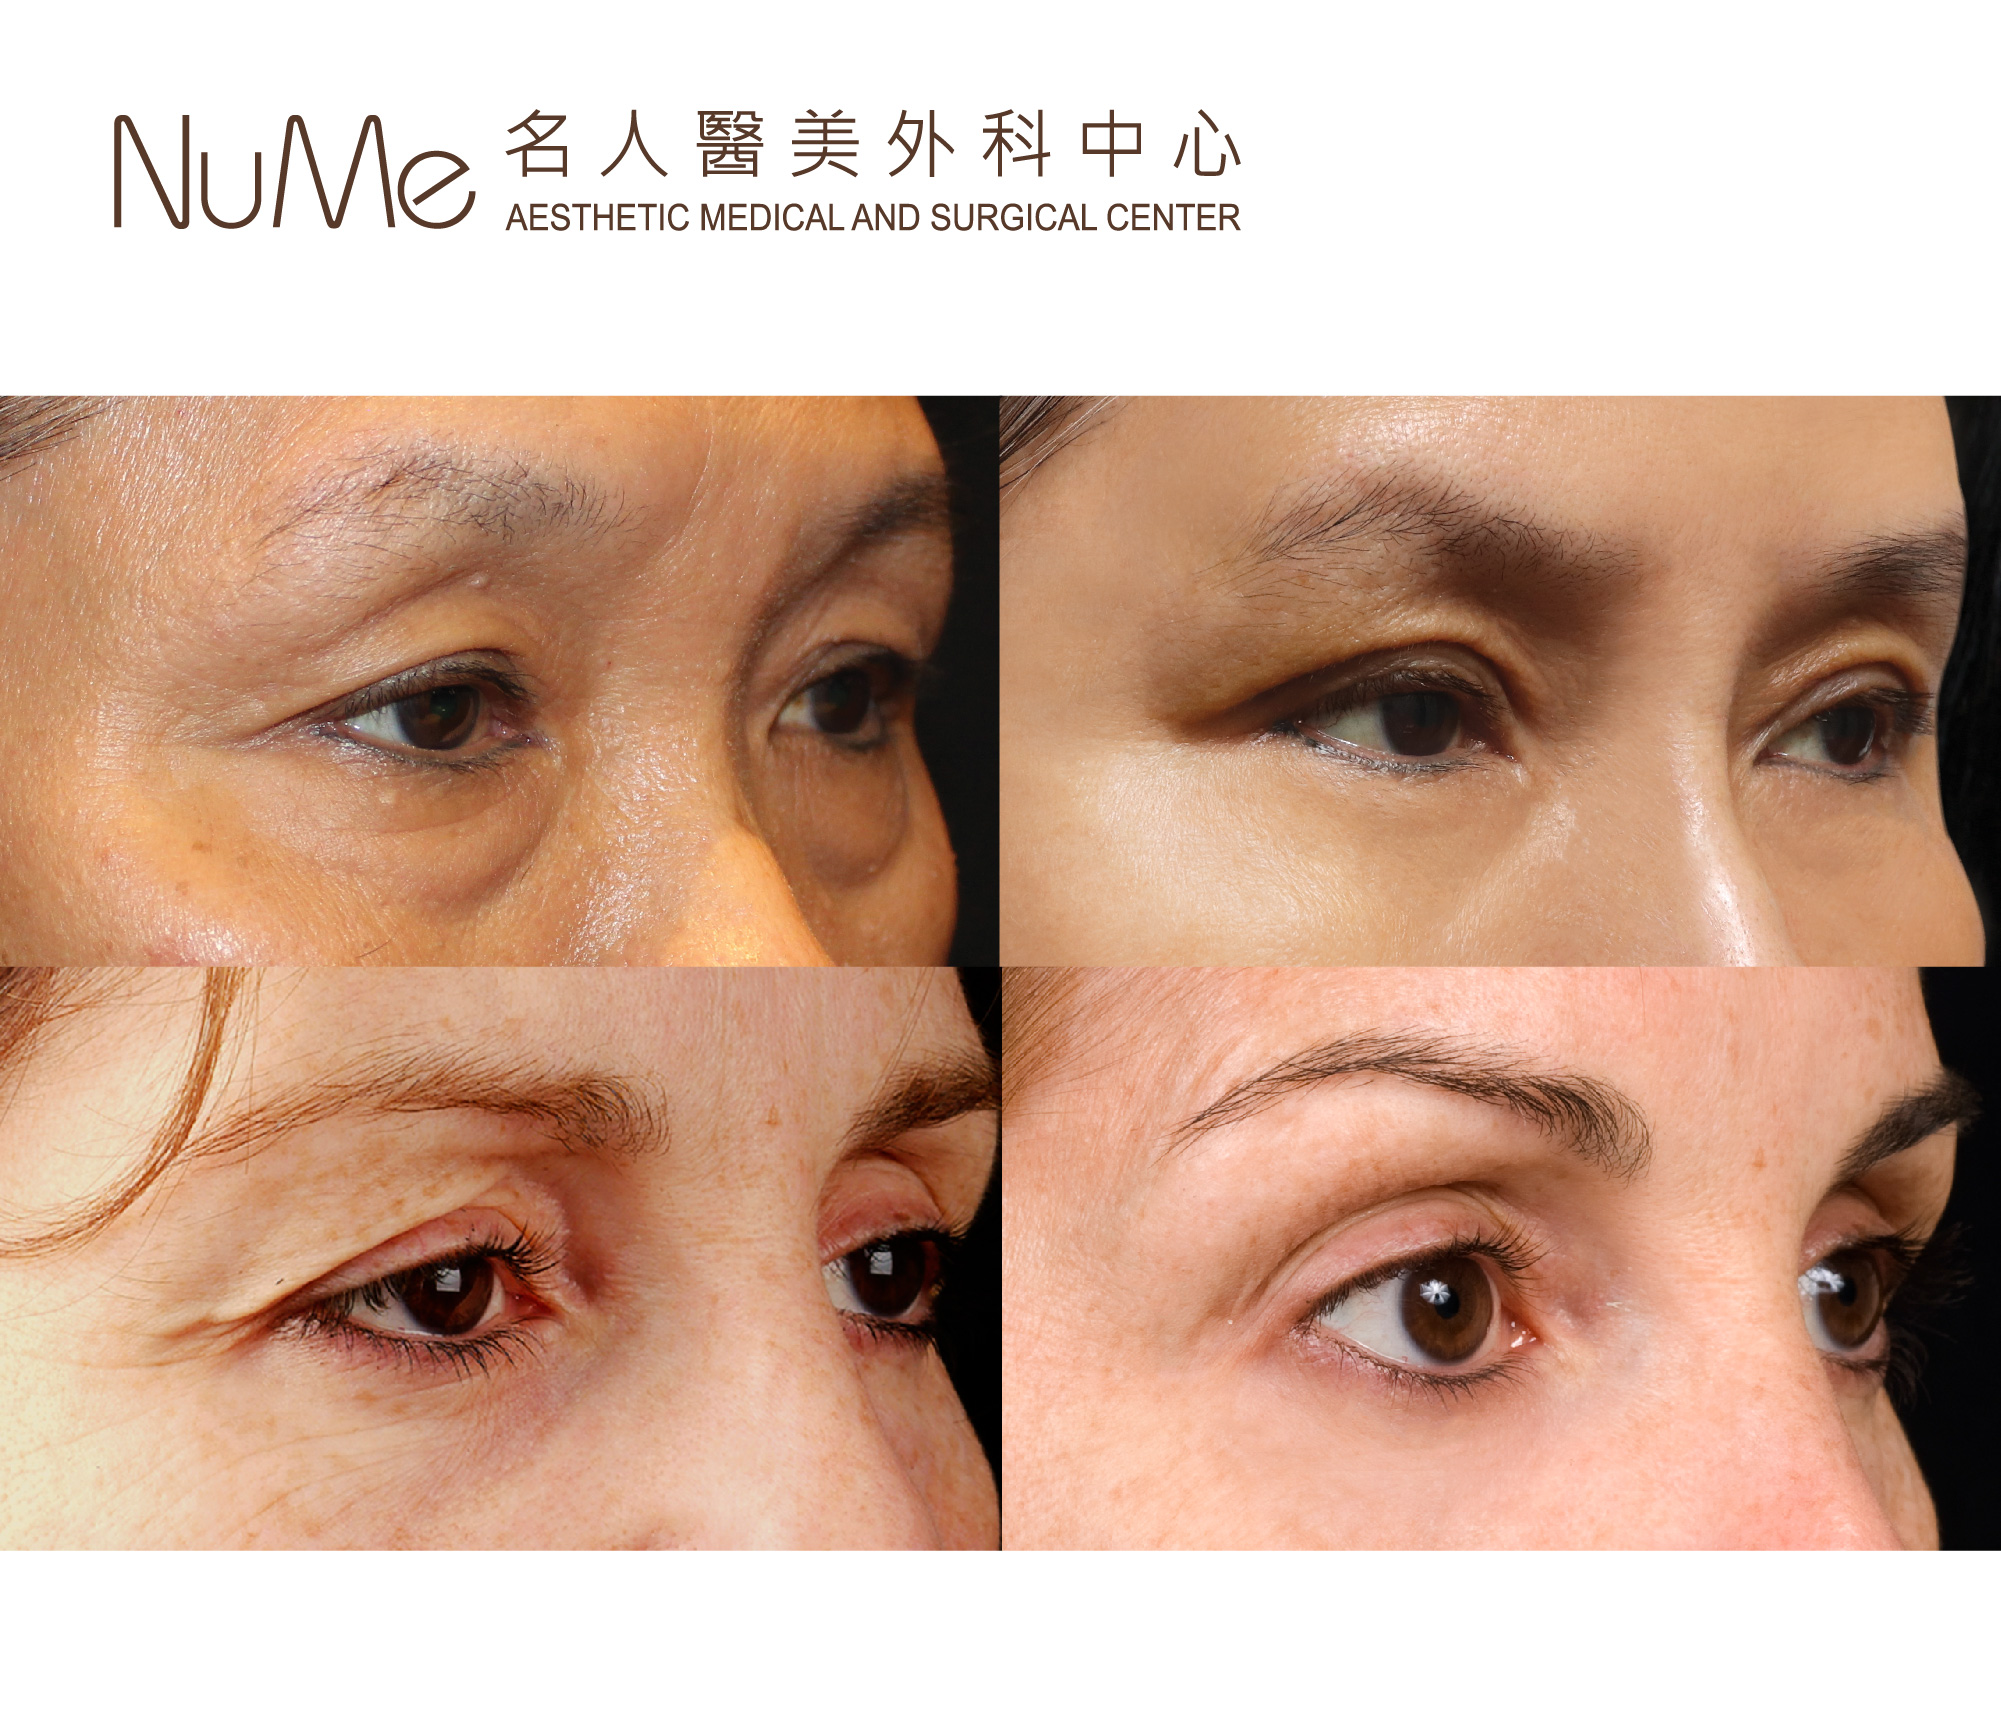 NuMe-Facebook-Before-After-Photos-Comments-Thermage-Eyes-17.jpg